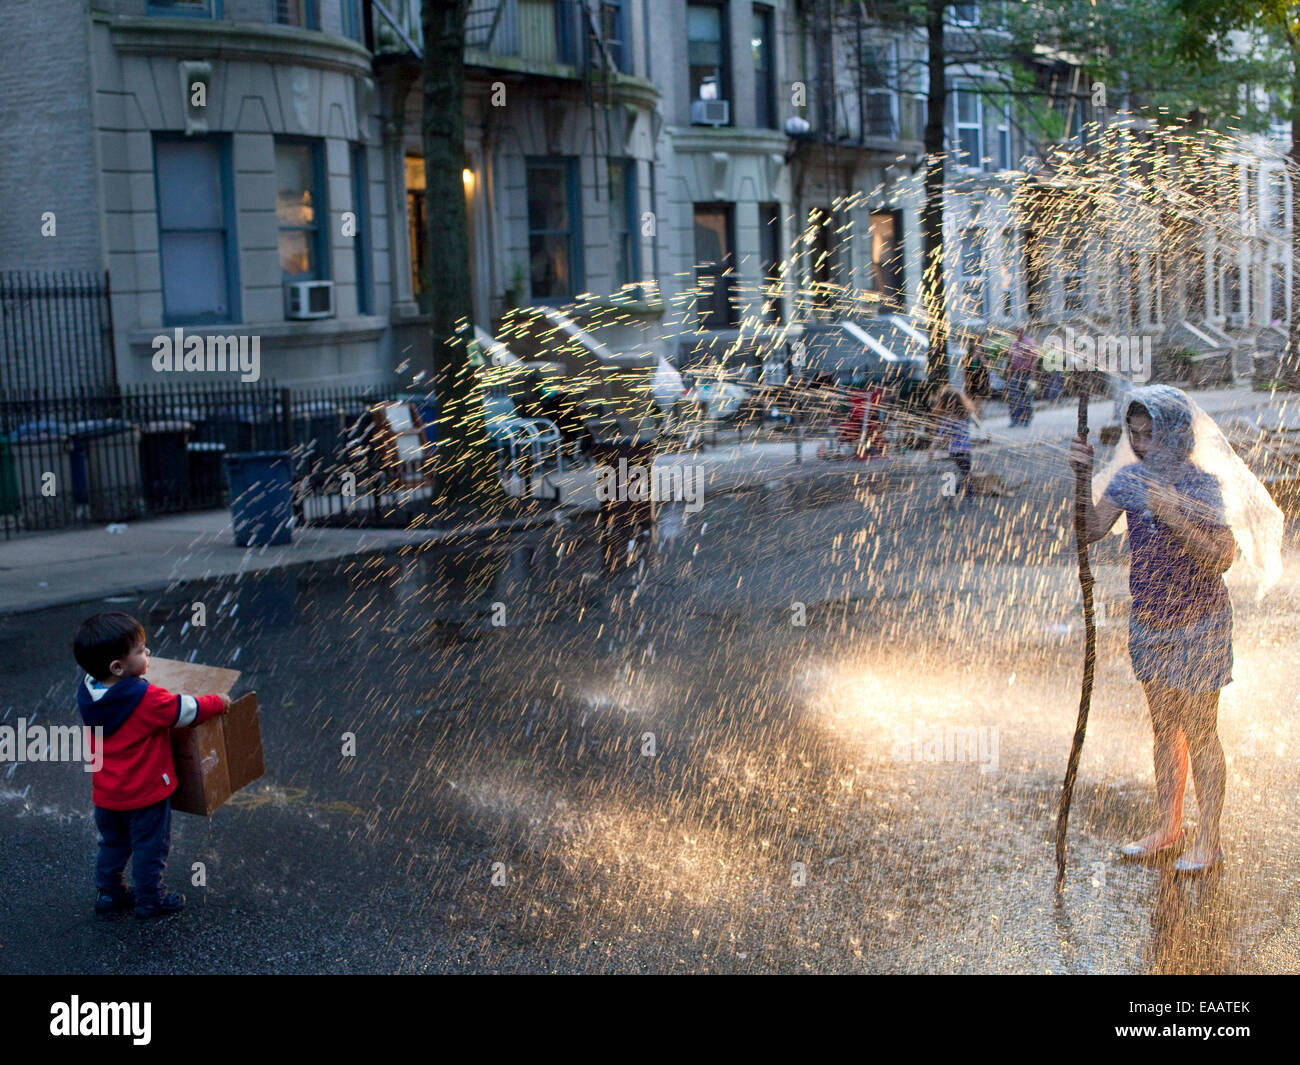 kids playing in fire hydrant sprinkler during Brooklyn block party. - Stock Image